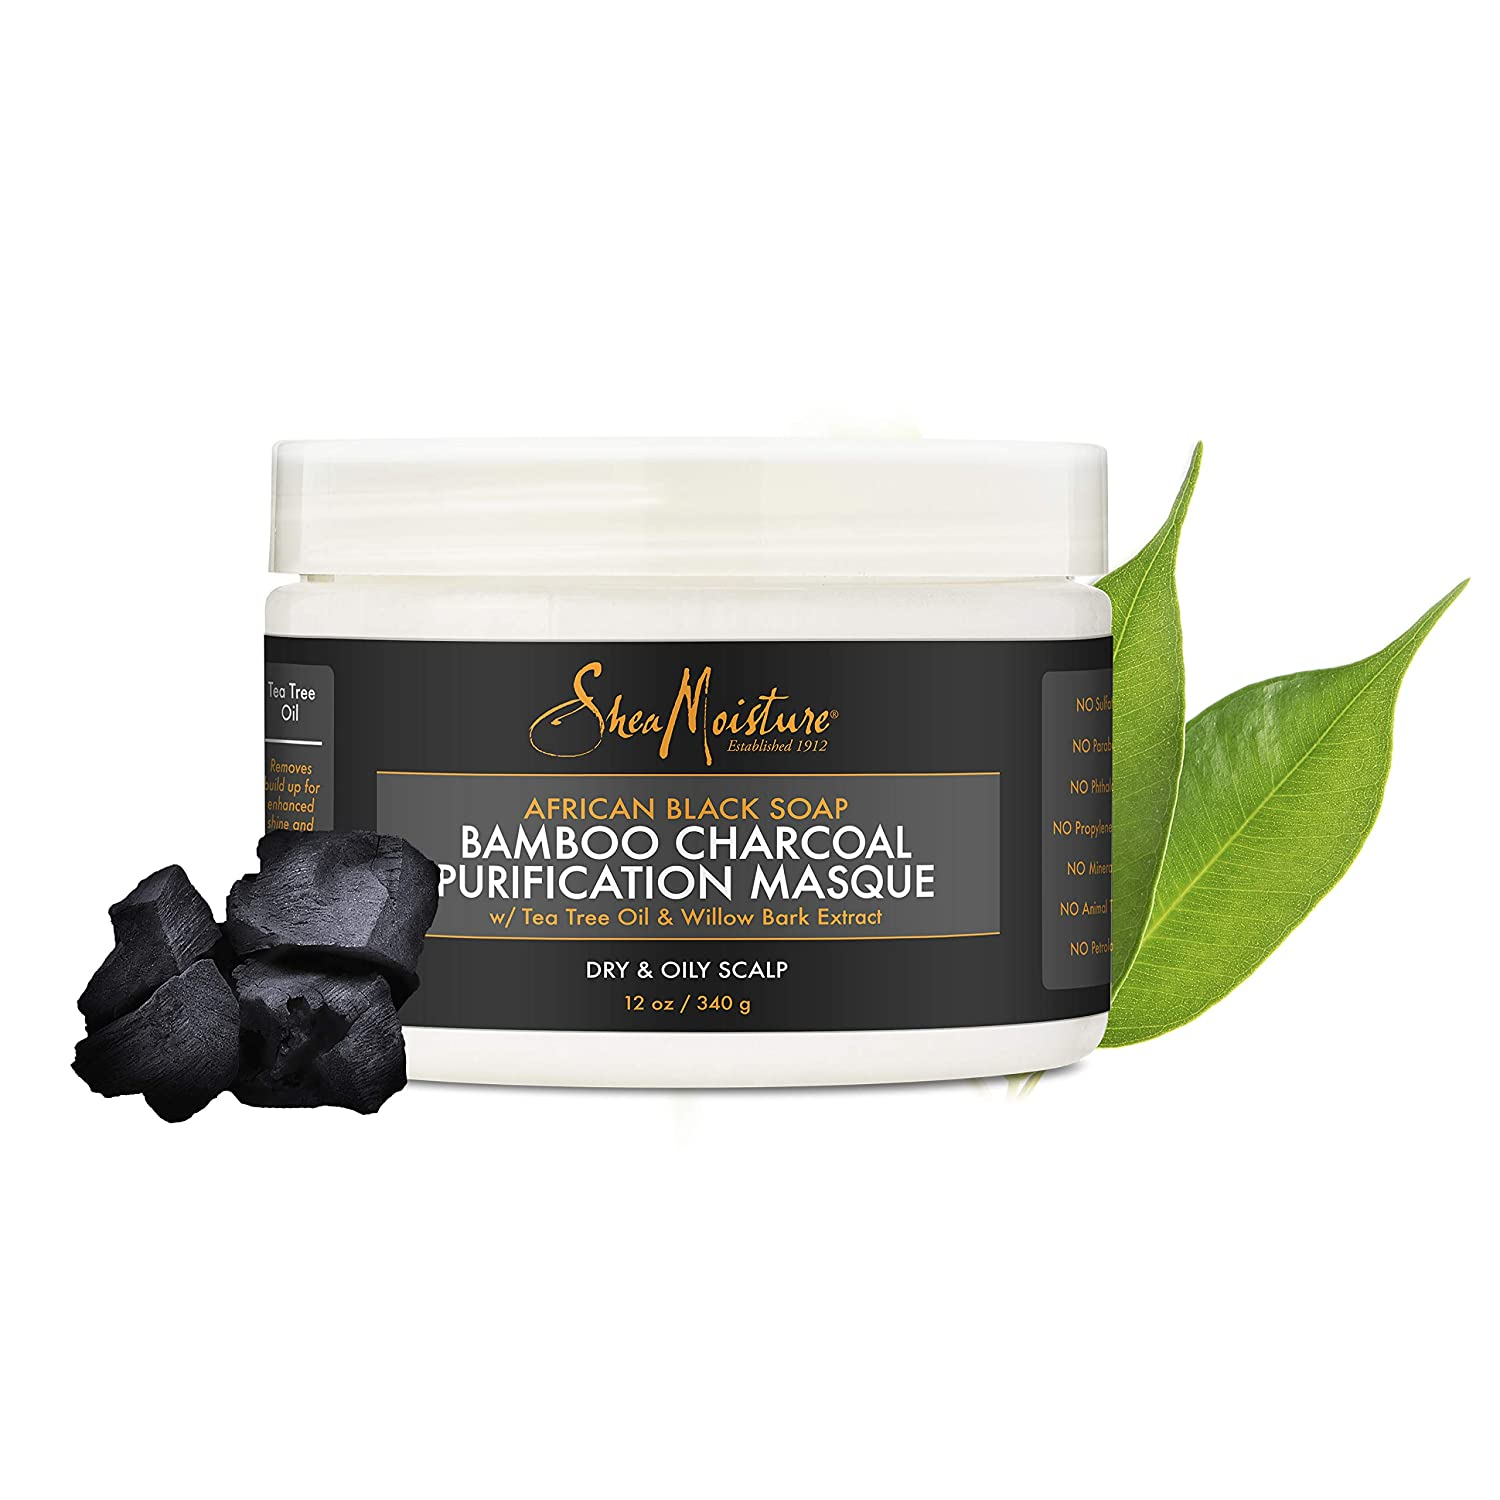 SheaMoisture African Black Soap Bamboo Charcoal Purification Masque Hair Treatment, 12 Ounce